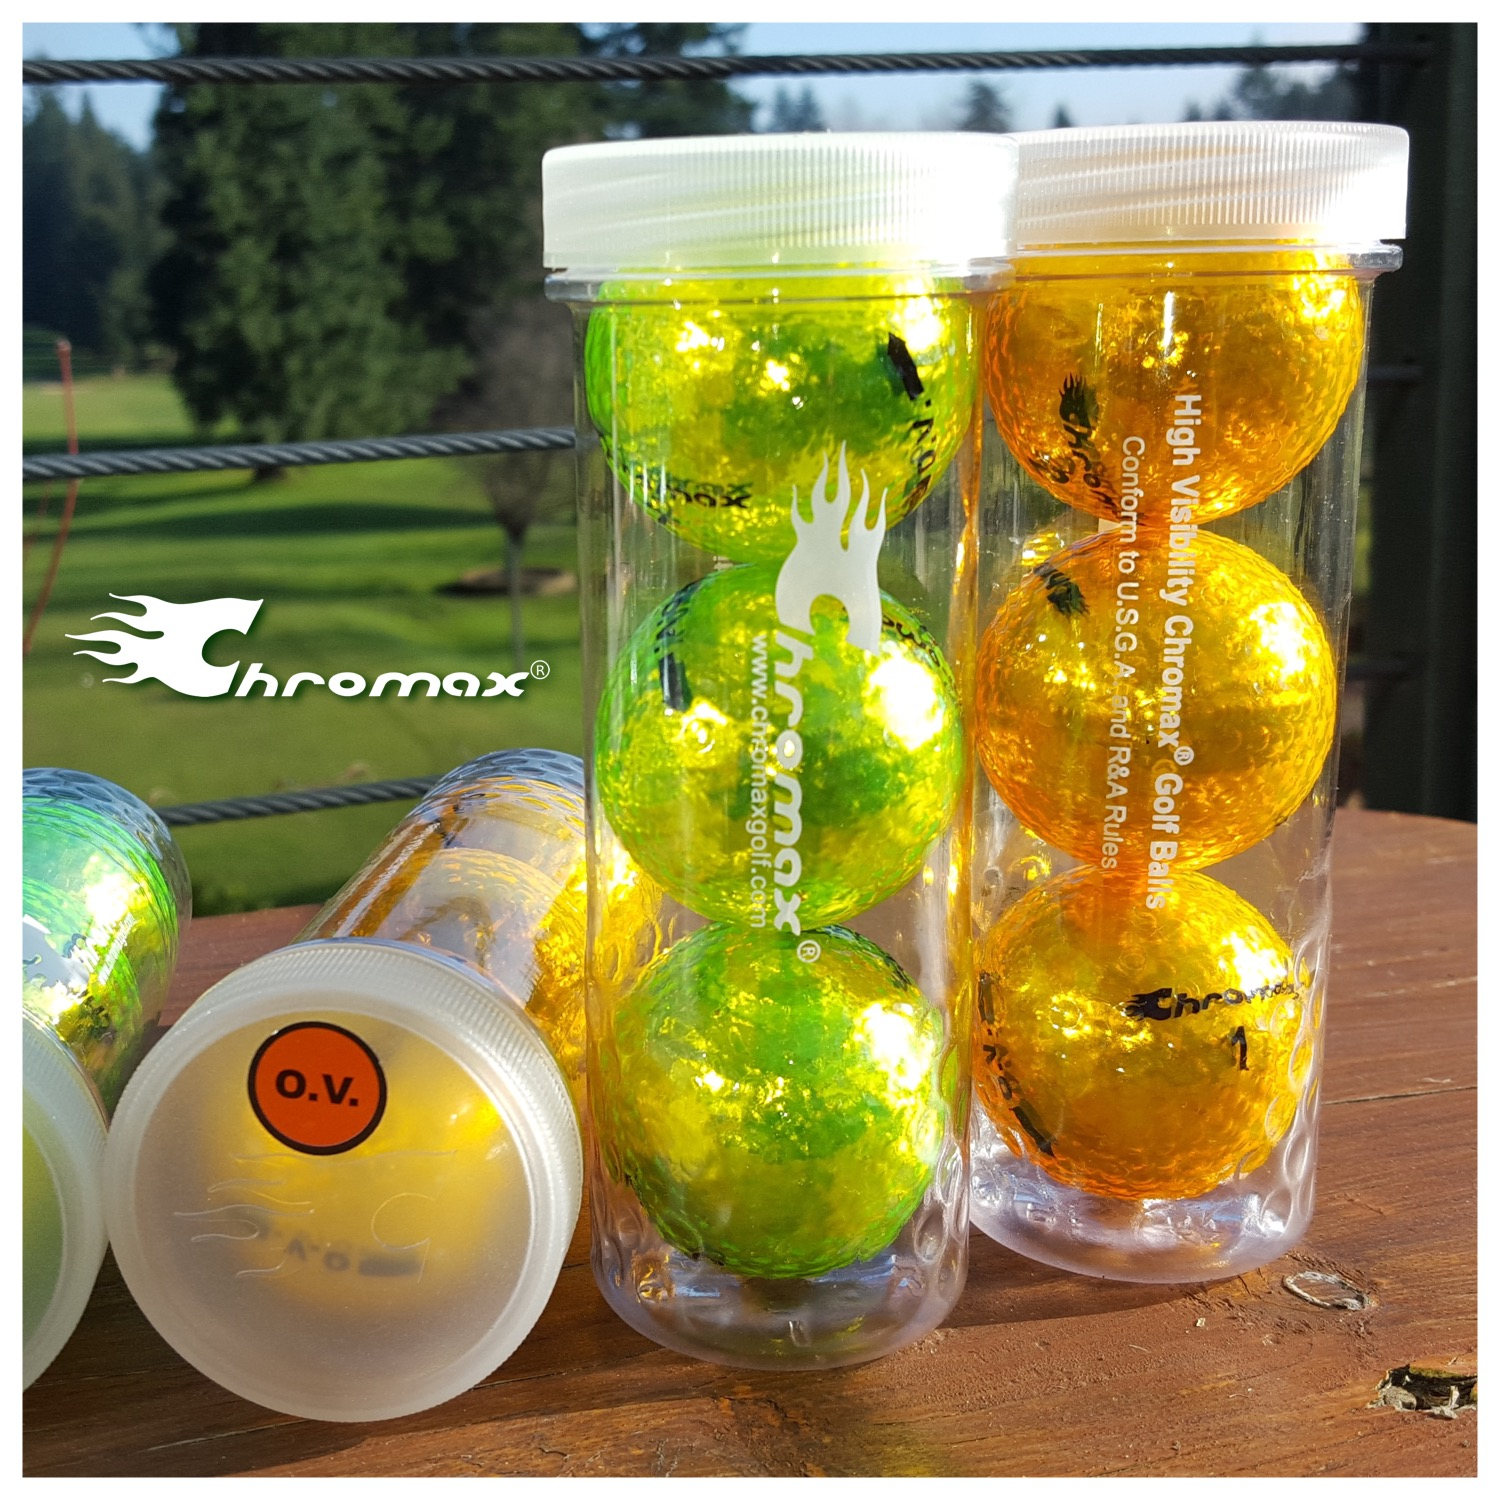 Chromax - OV Tubes - Square - Golf Course in Background